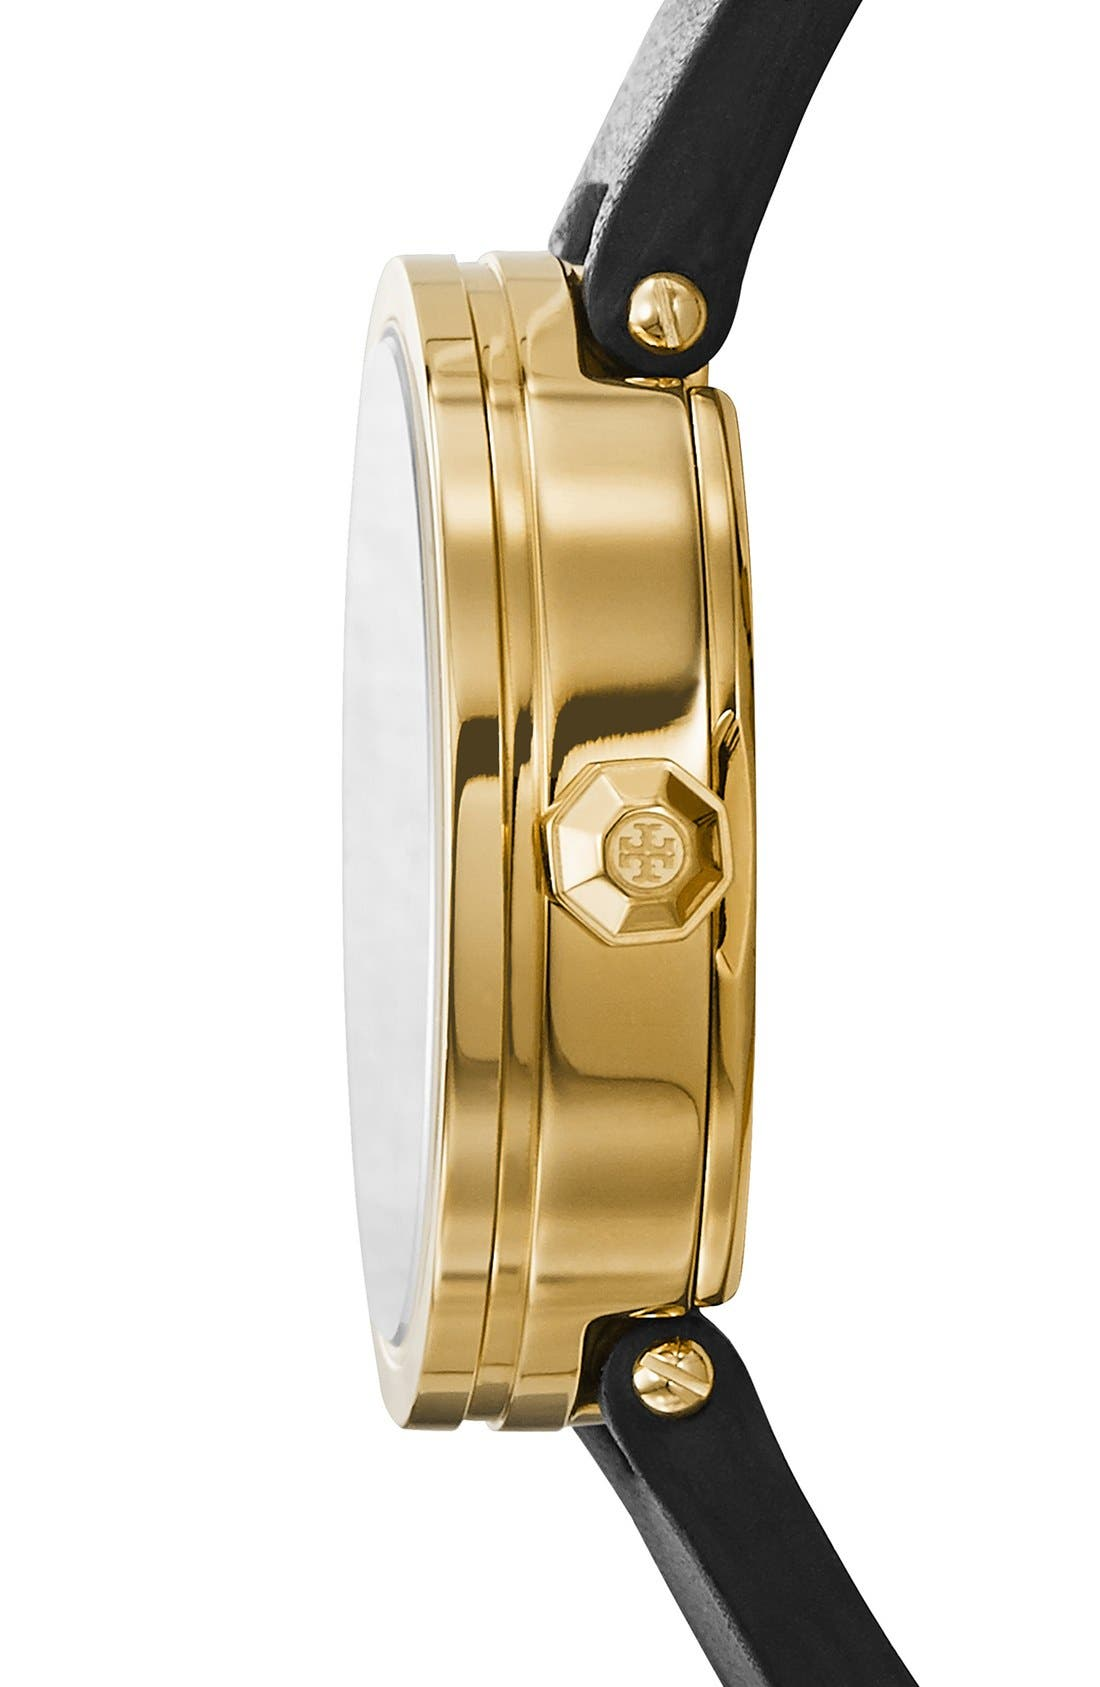 TORY BURCH,                             'Reva' Logo Dial Leather Strap Watch, 28mm,                             Alternate thumbnail 2, color,                             002